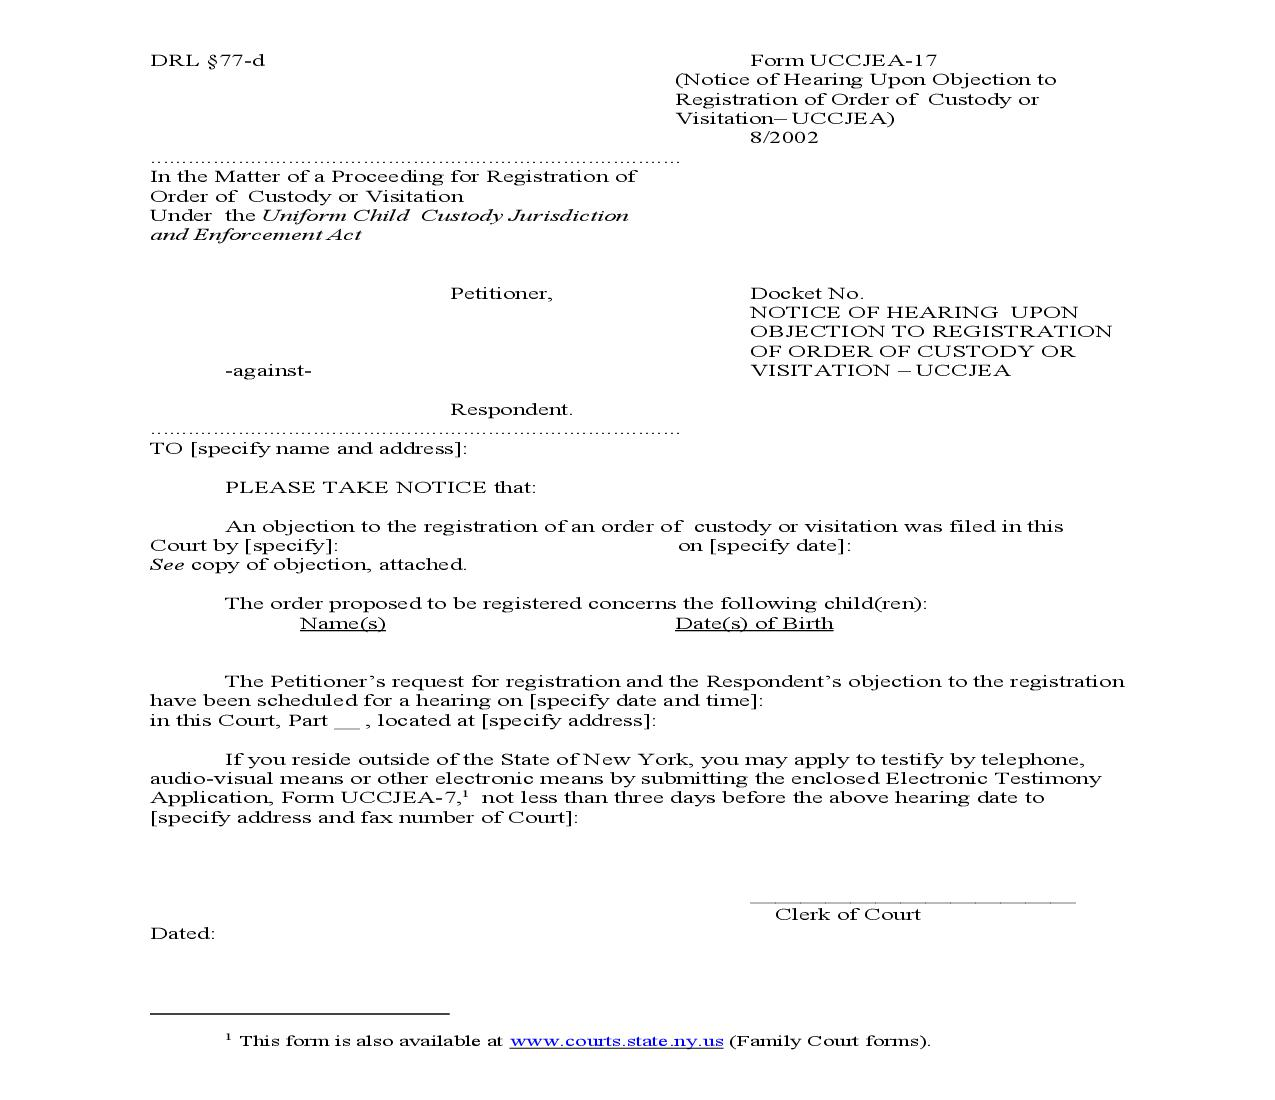 Notice Of Hearing Upon Objection To Registration Of Order Of Custody Or Visitation {UCCJEA-17} | Pdf Fpdf Doc Docx | New York